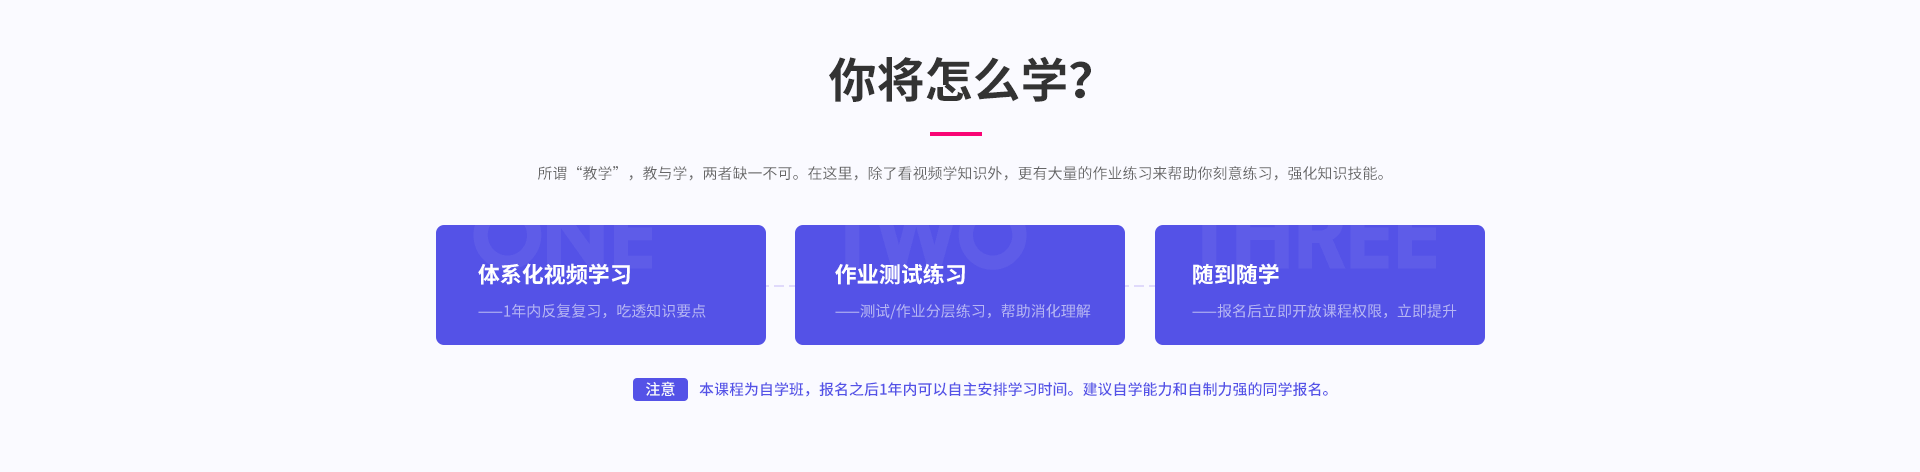 axure课程web_06.png